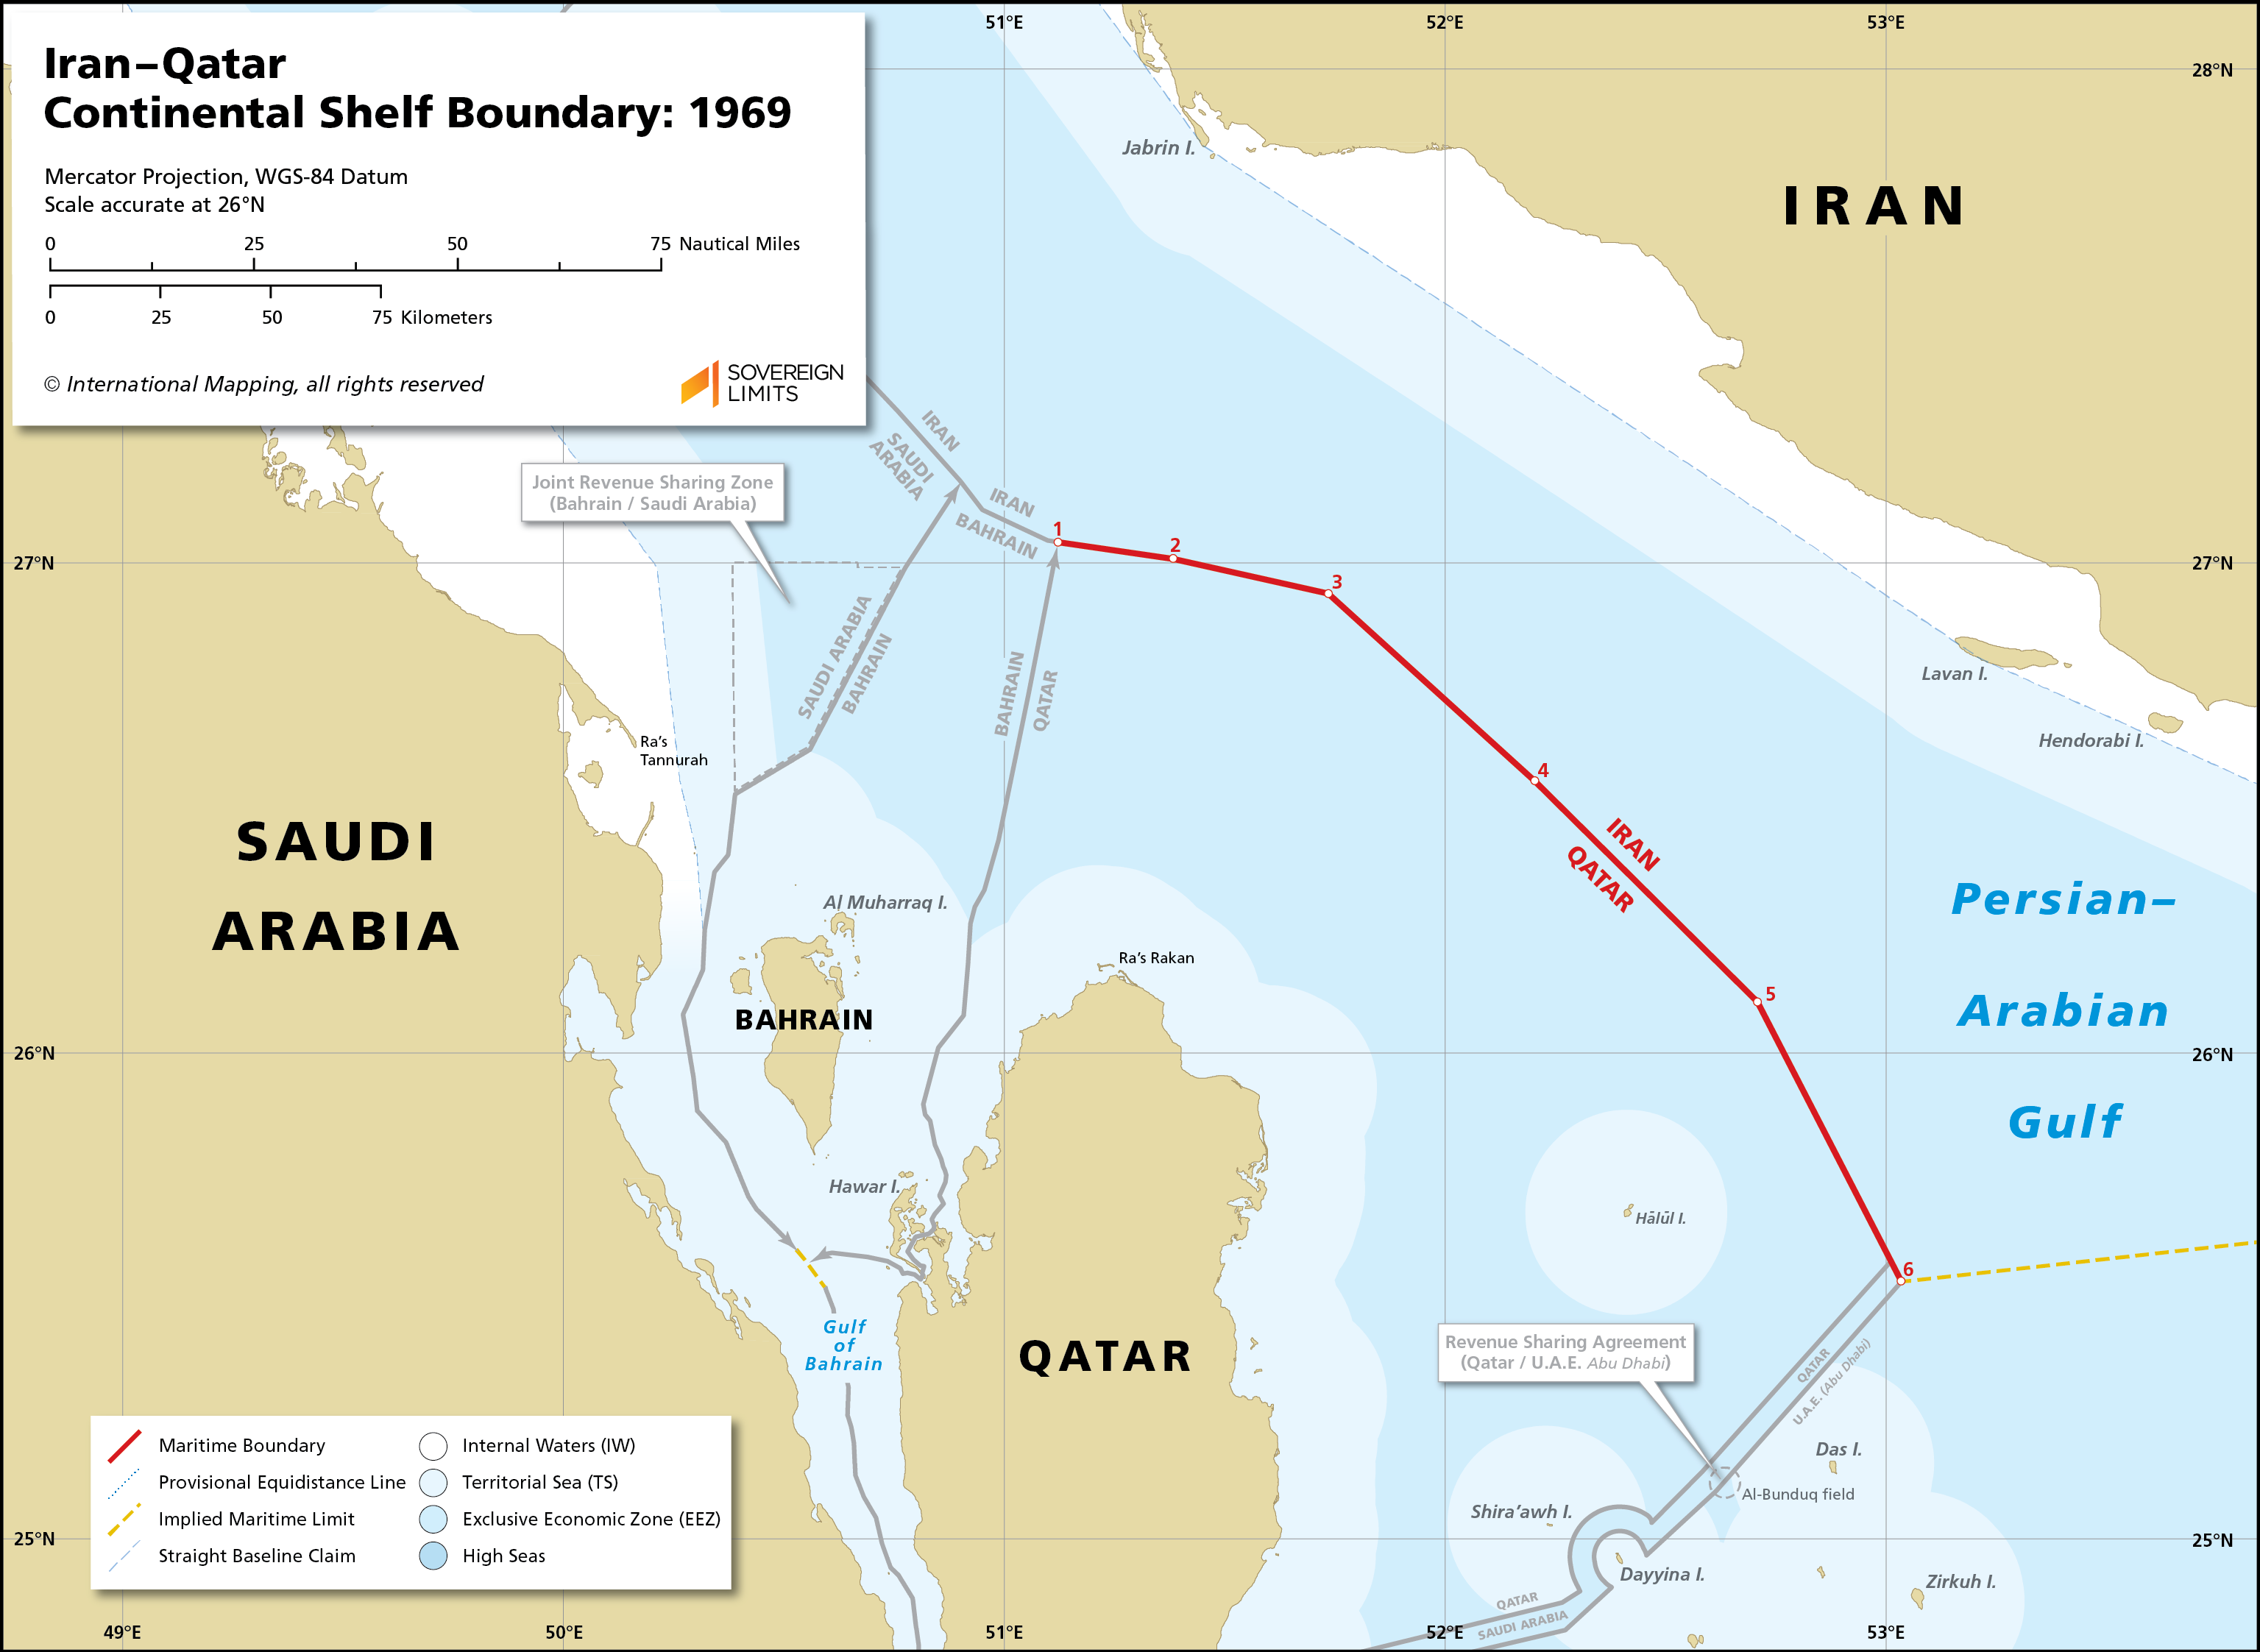 Map showing the maritime boundary between Iran and Qatar